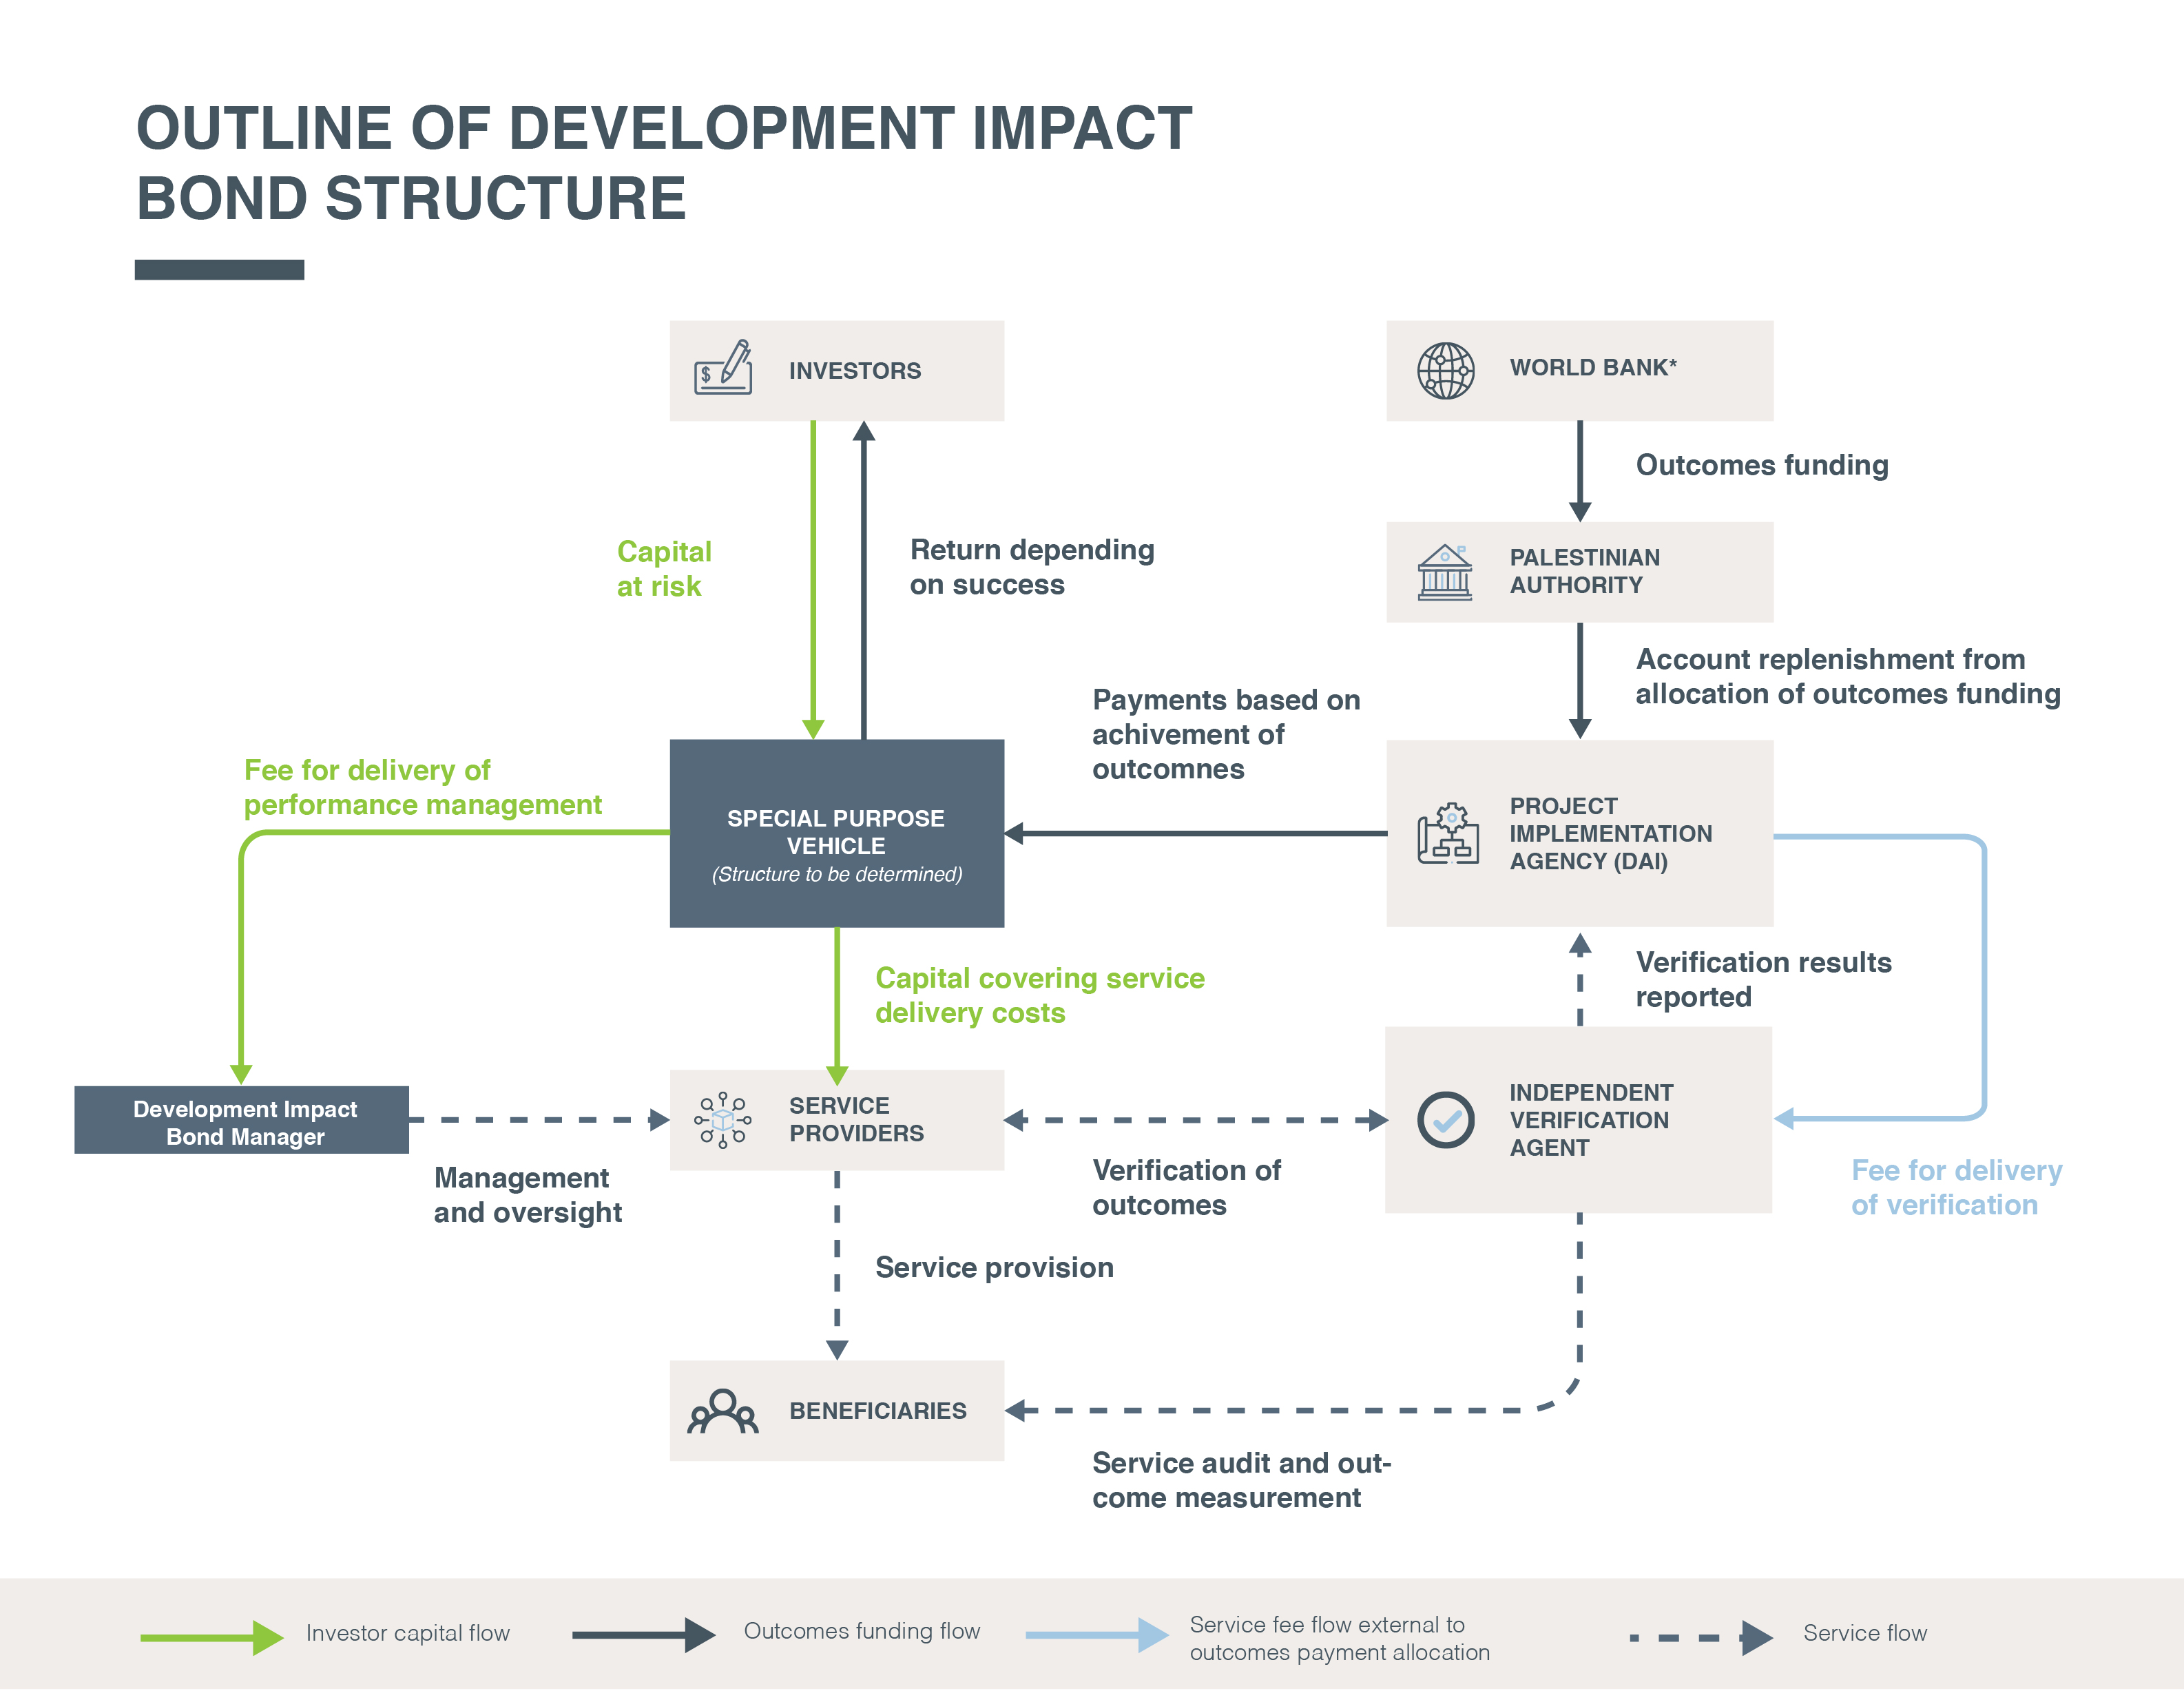 Outline of Development Impact Bond Structure-01-429fc7.jpg